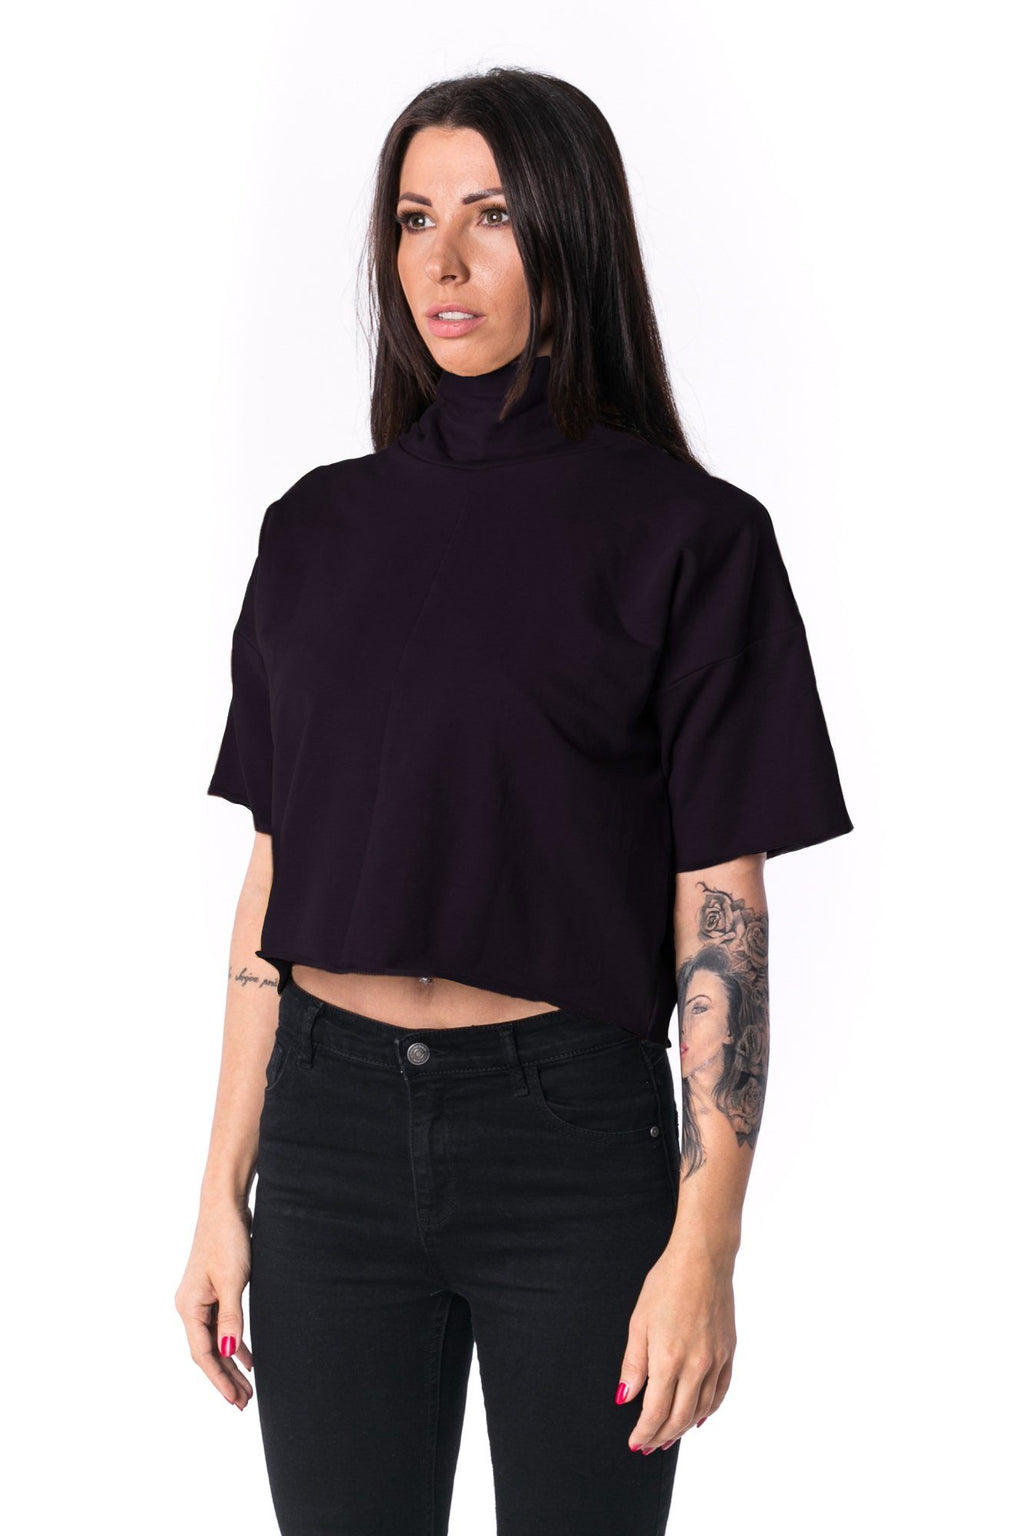 The Woman Panelled Crop Turtleneck 17 // black